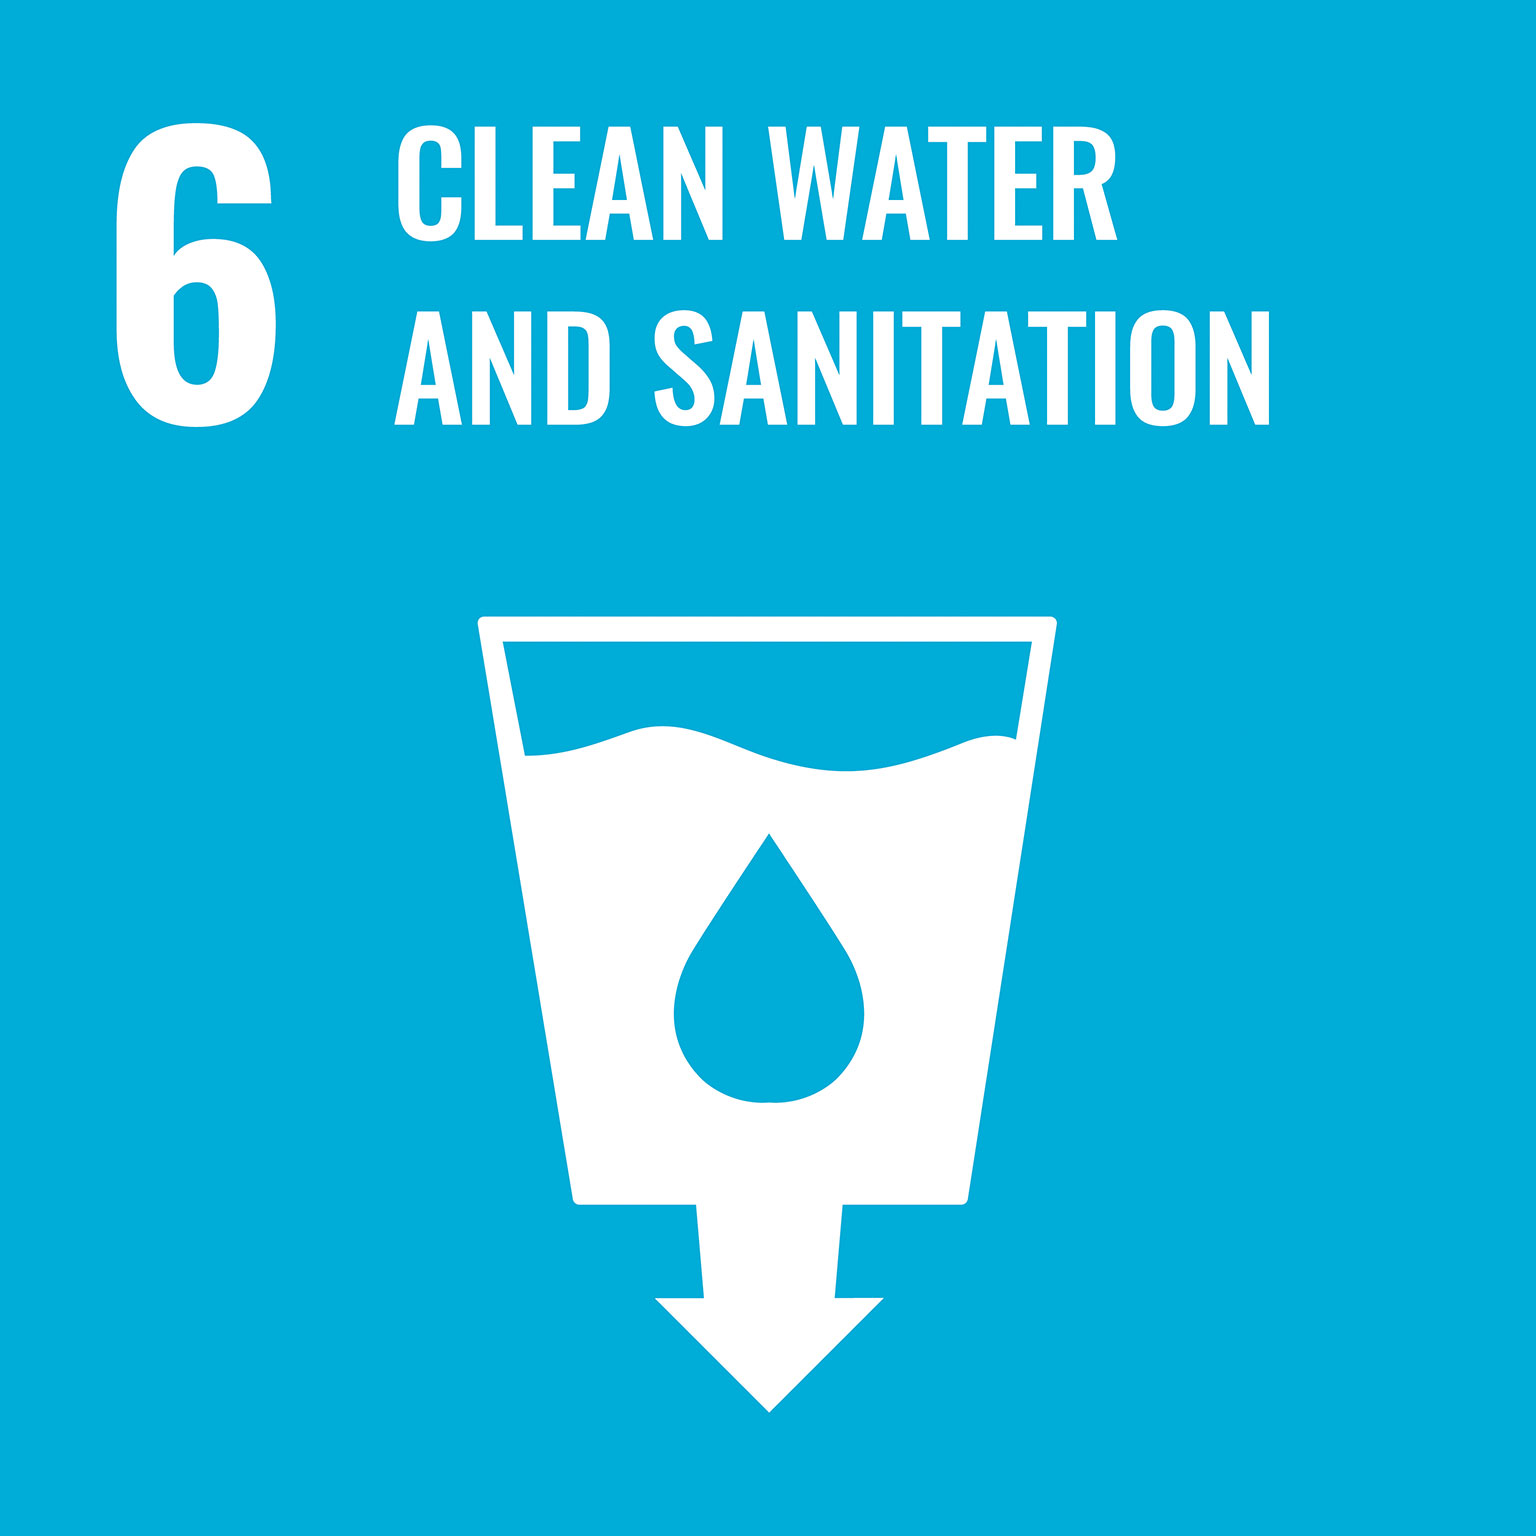 sustainable development goals: clean water and sanitation